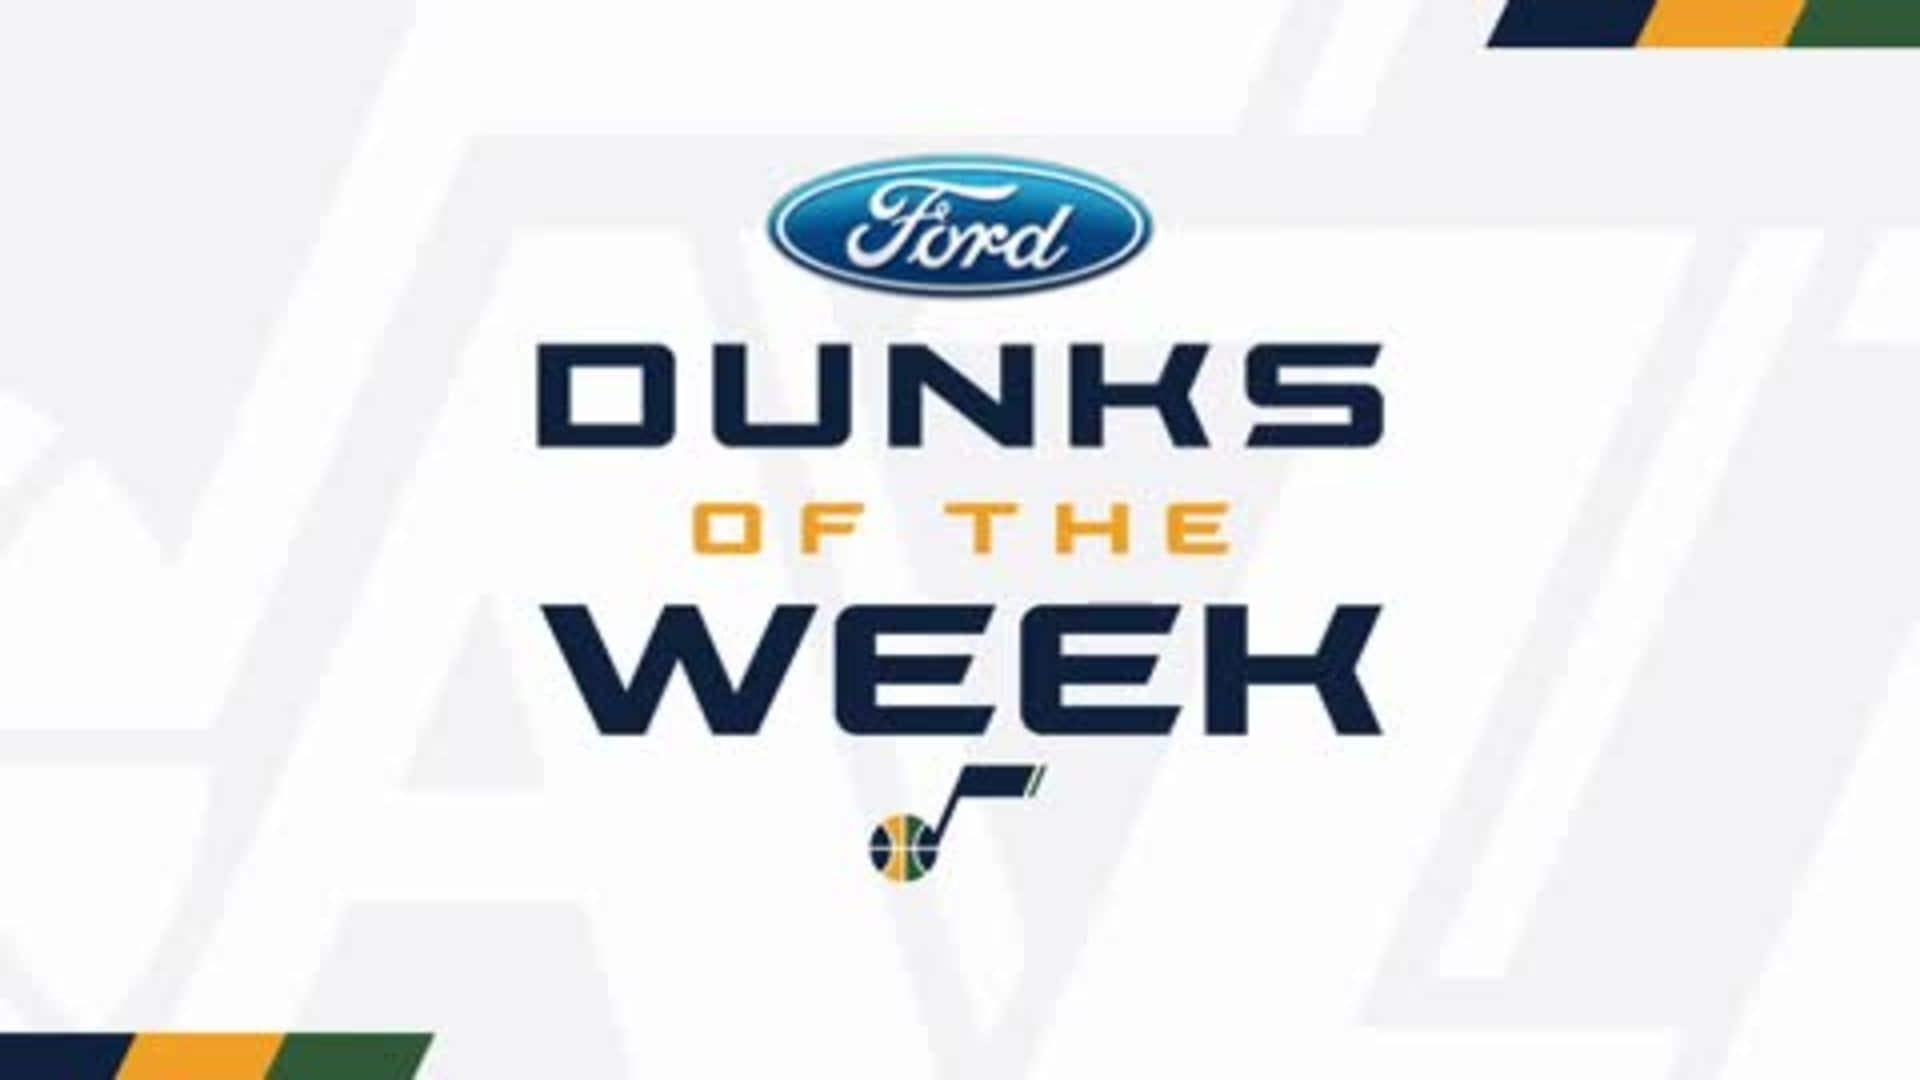 Dunks of the Week - 2.6.20